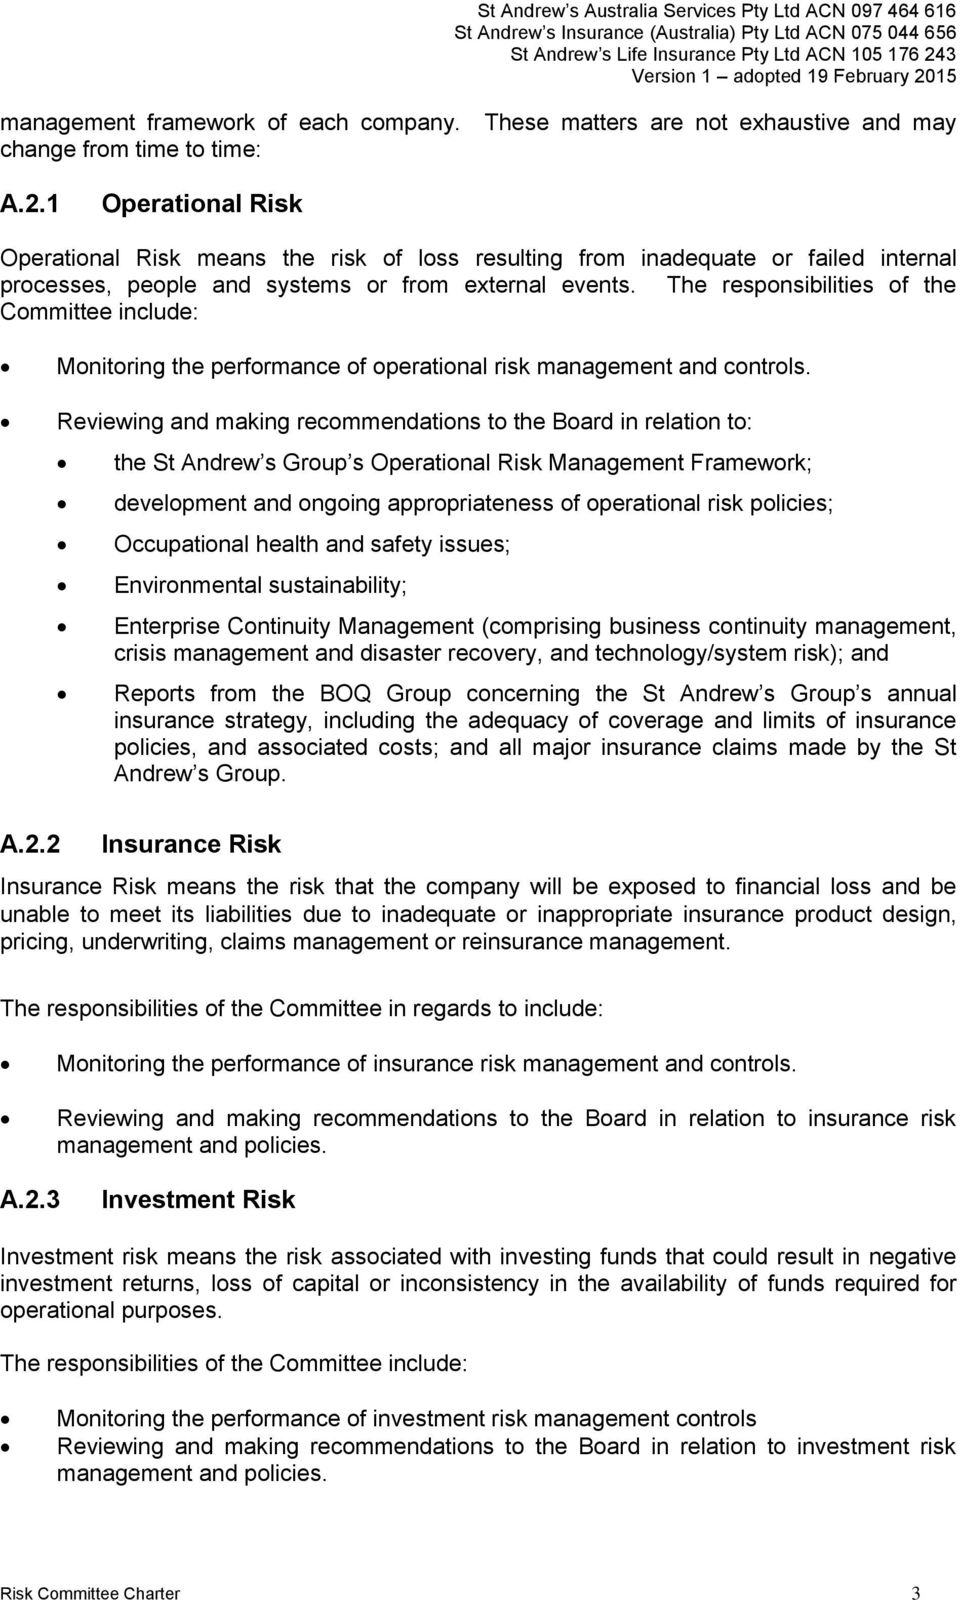 The responsibilities of the Committee include: Monitoring the performance of operational risk management and controls.